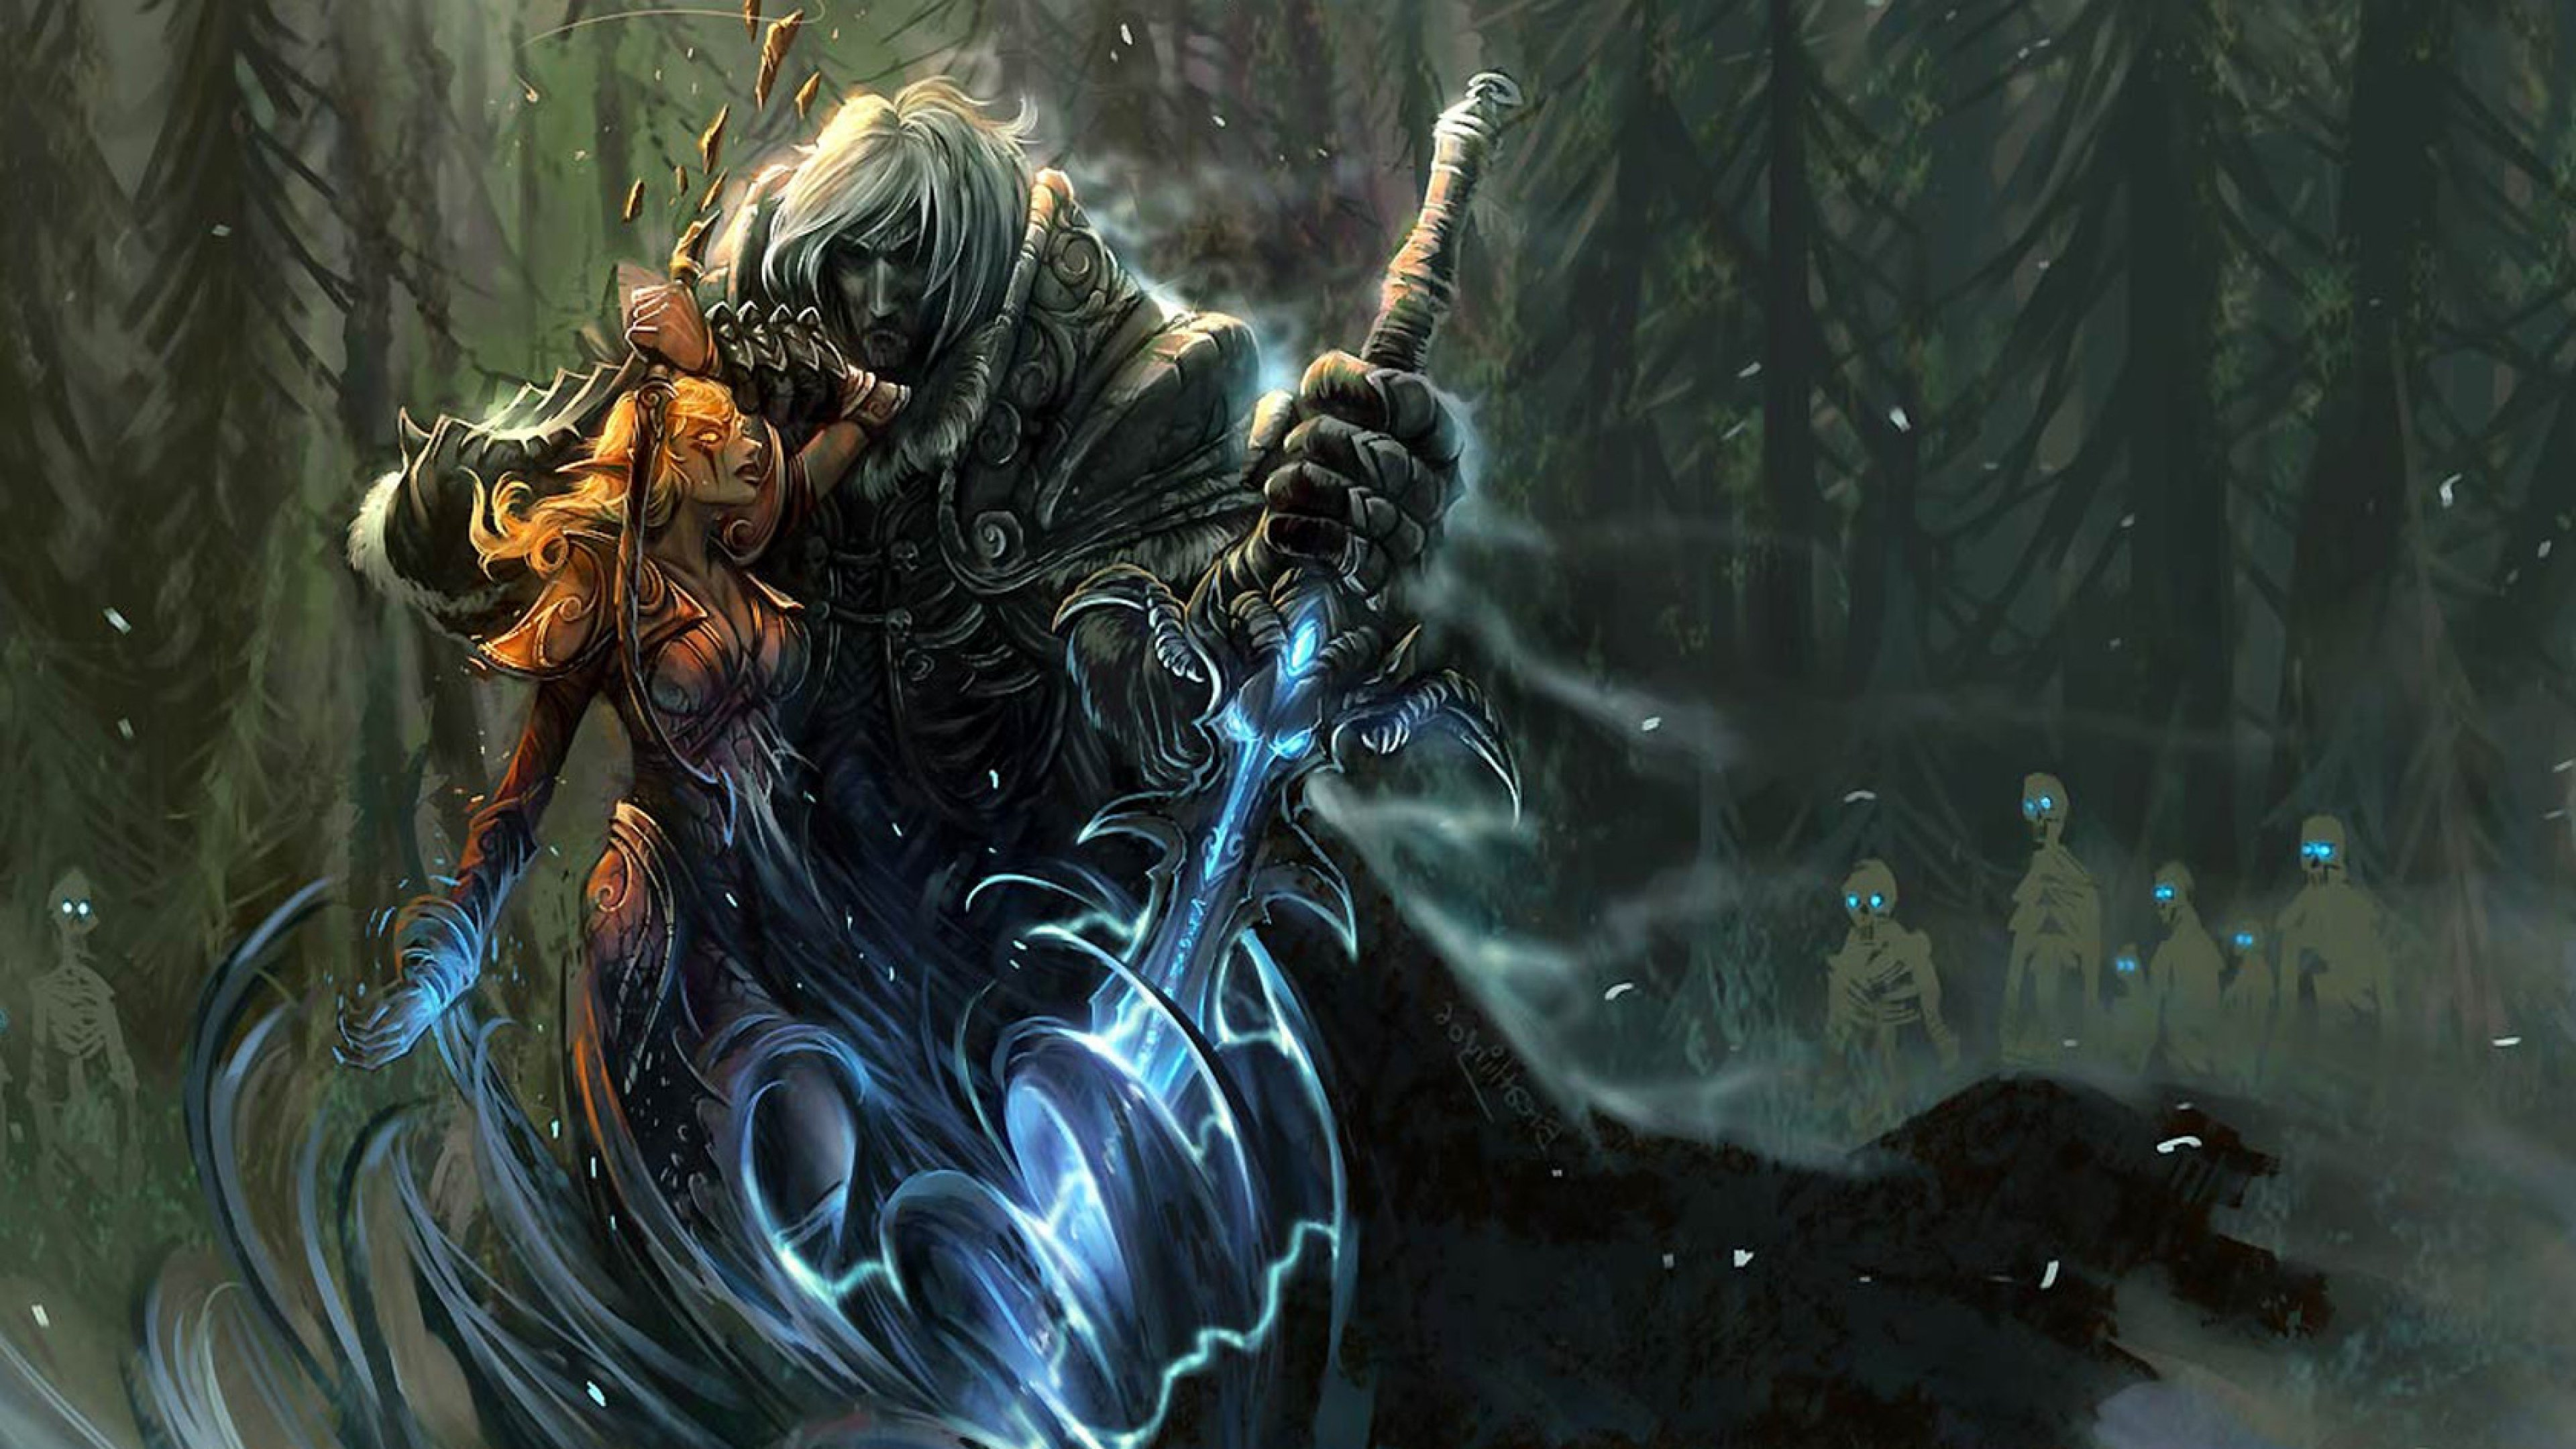 Download Wallpaper 3840x2160 World of warcraft Arthas Sword Forest 3840x2160